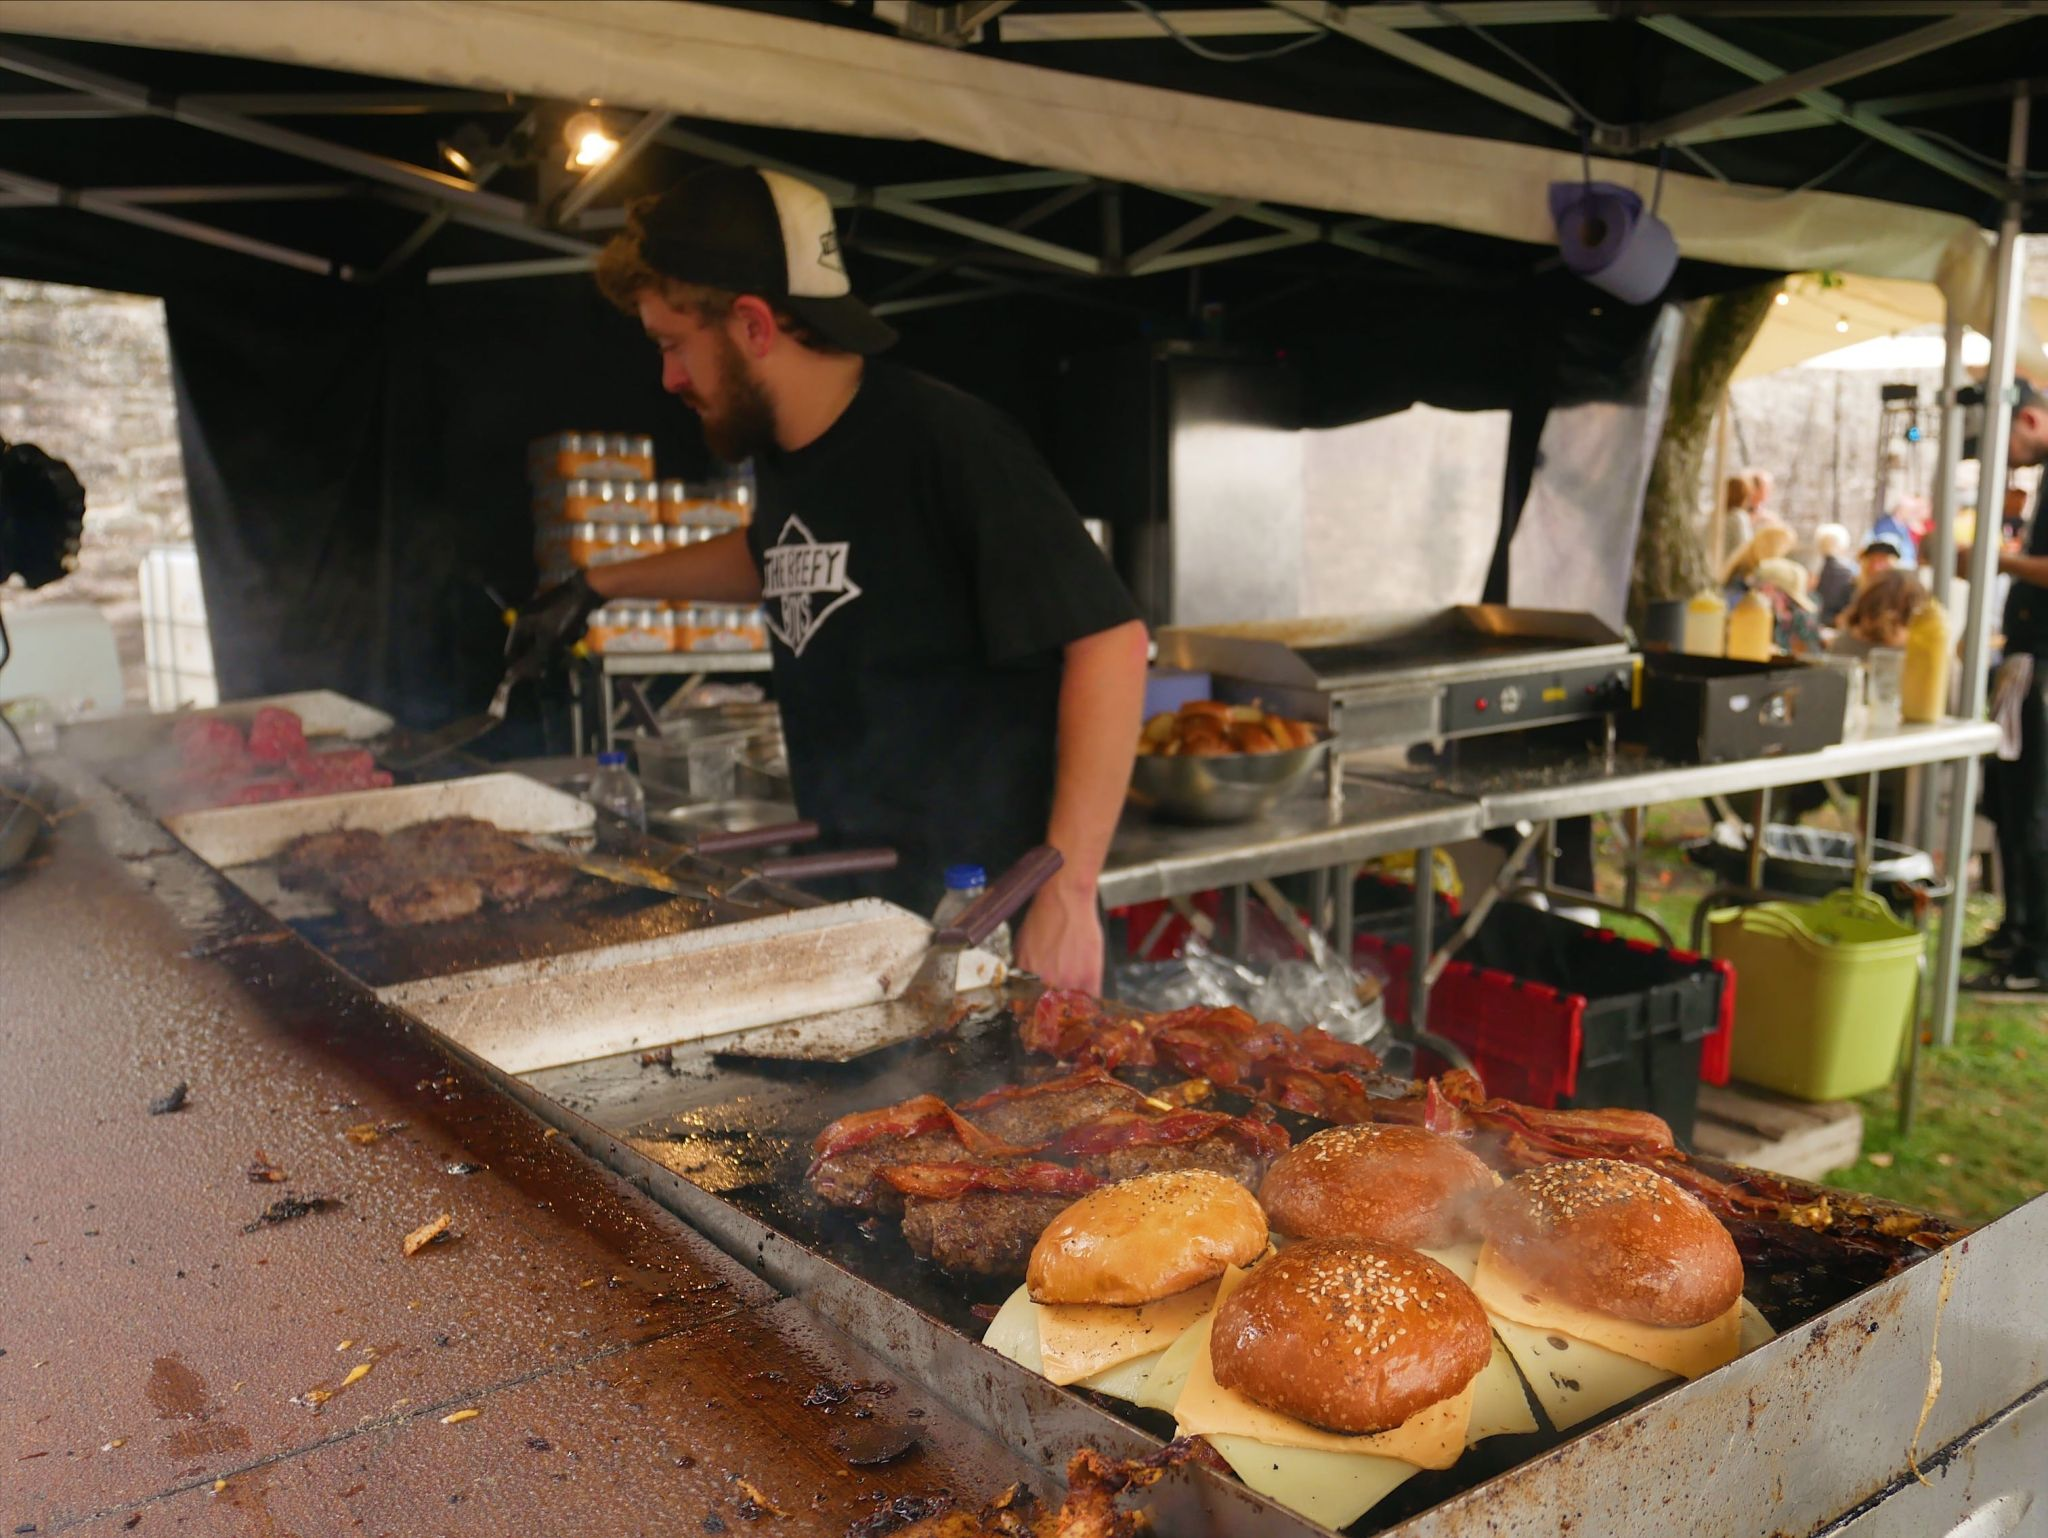 Beefy Boys preparing burgers at Abergavenny Food Festival